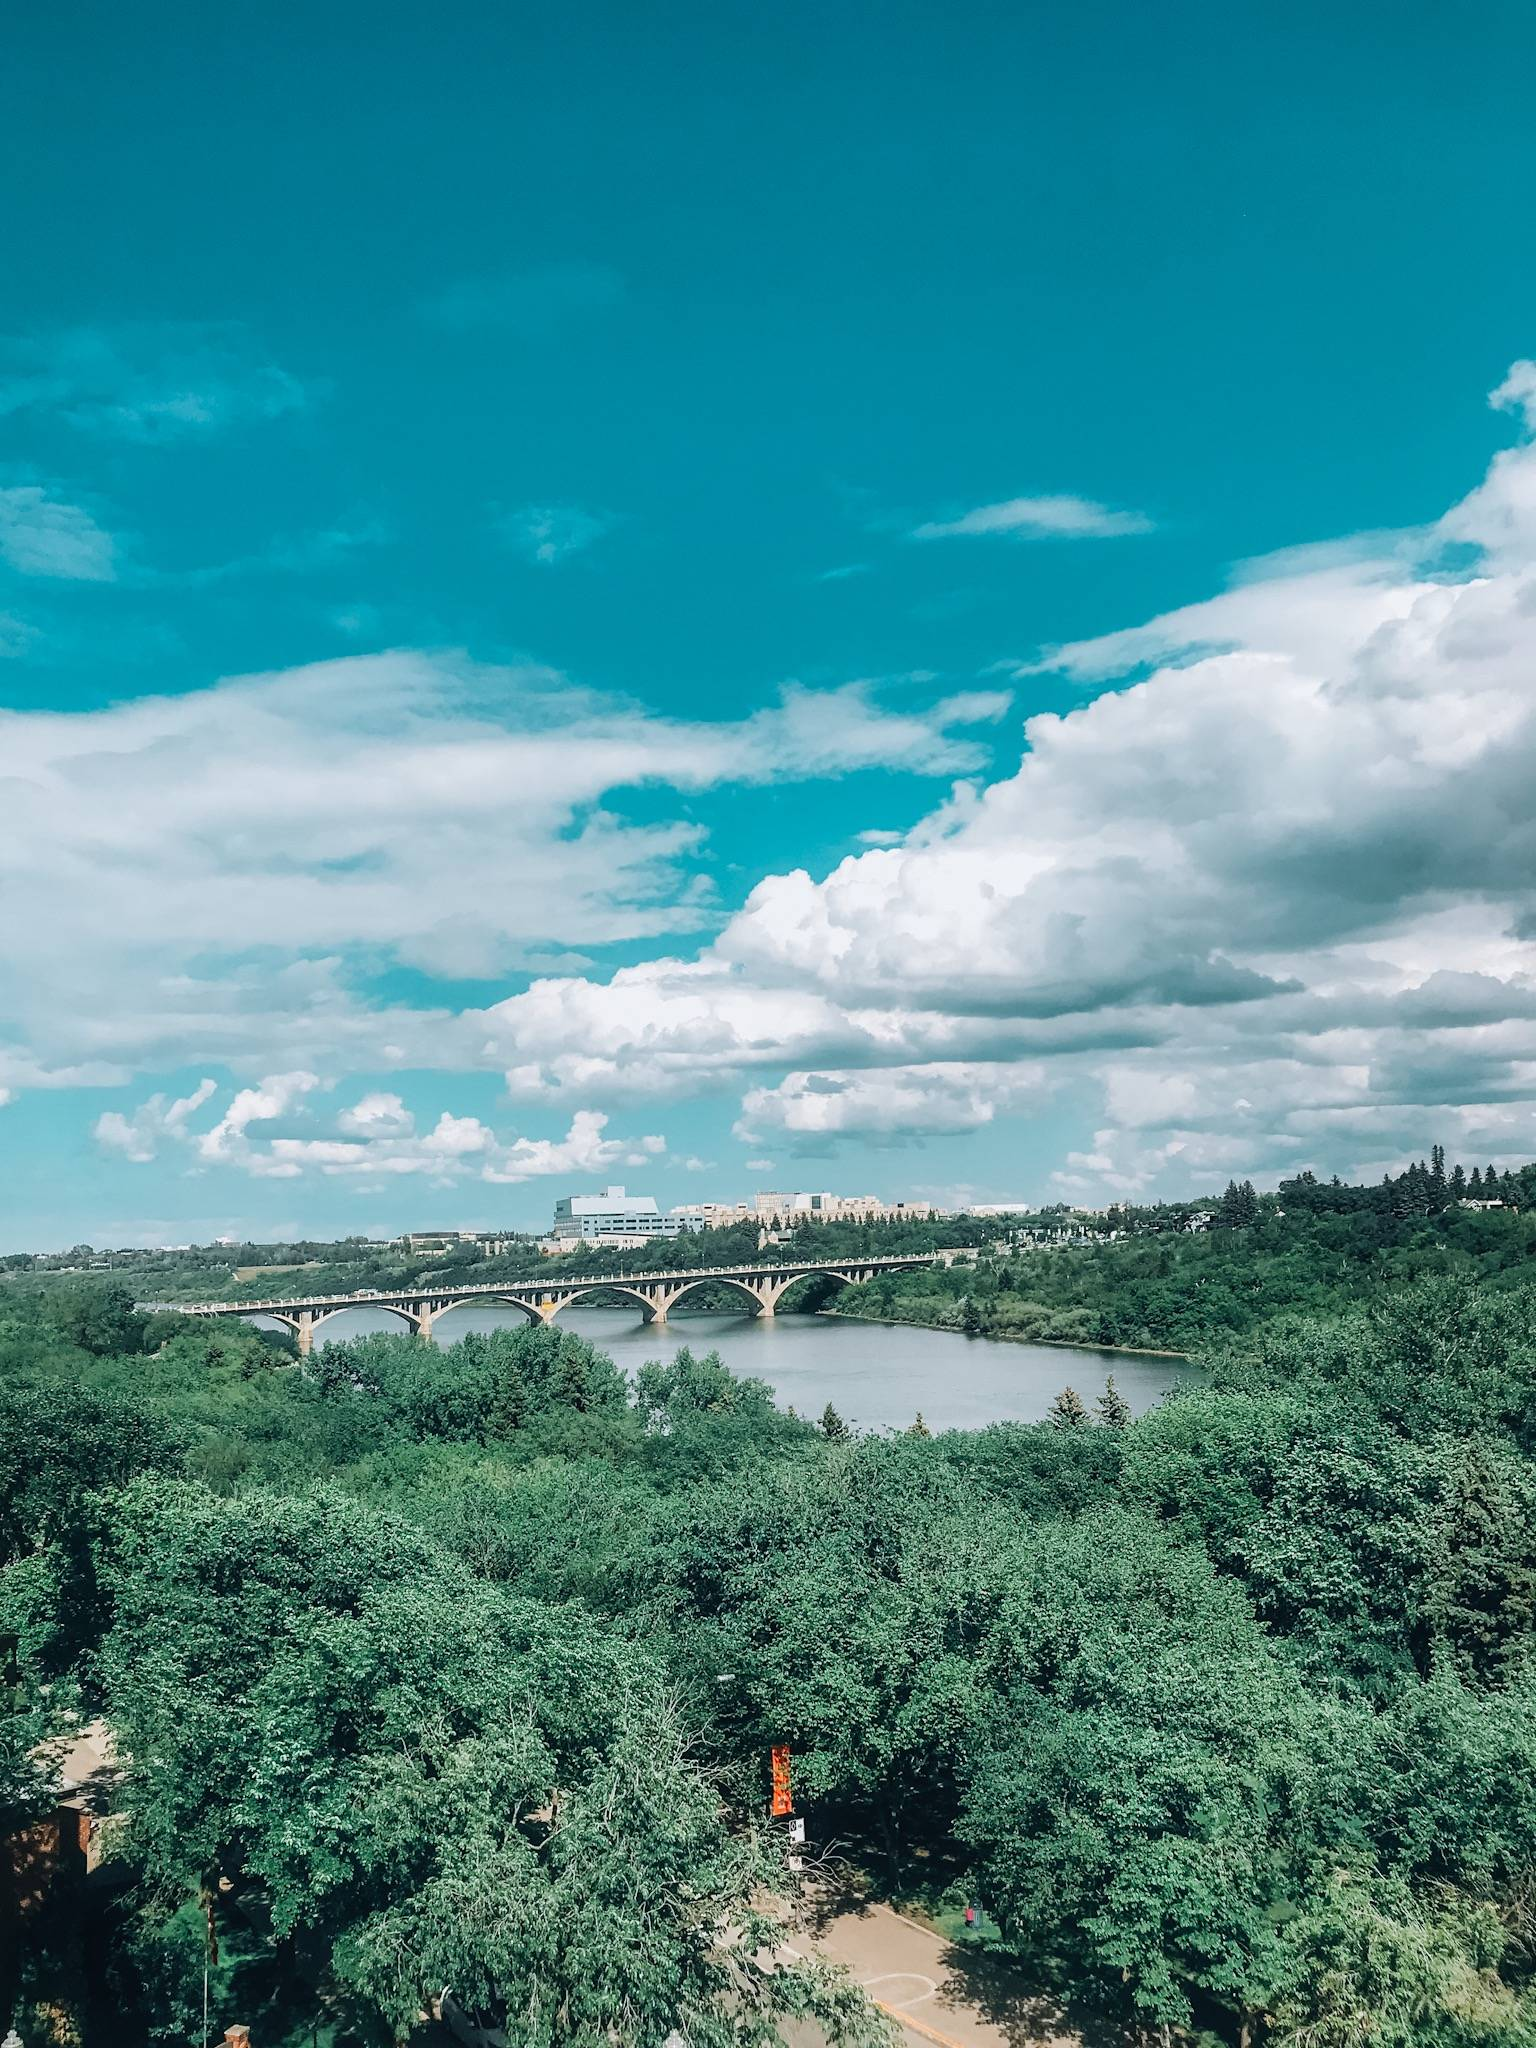 Planning a trip to Saskatoon? Check out this guide covering everything to do, see and eat in Saskatoon including where to find the best views #explorecanada #Saskatoon #Canada